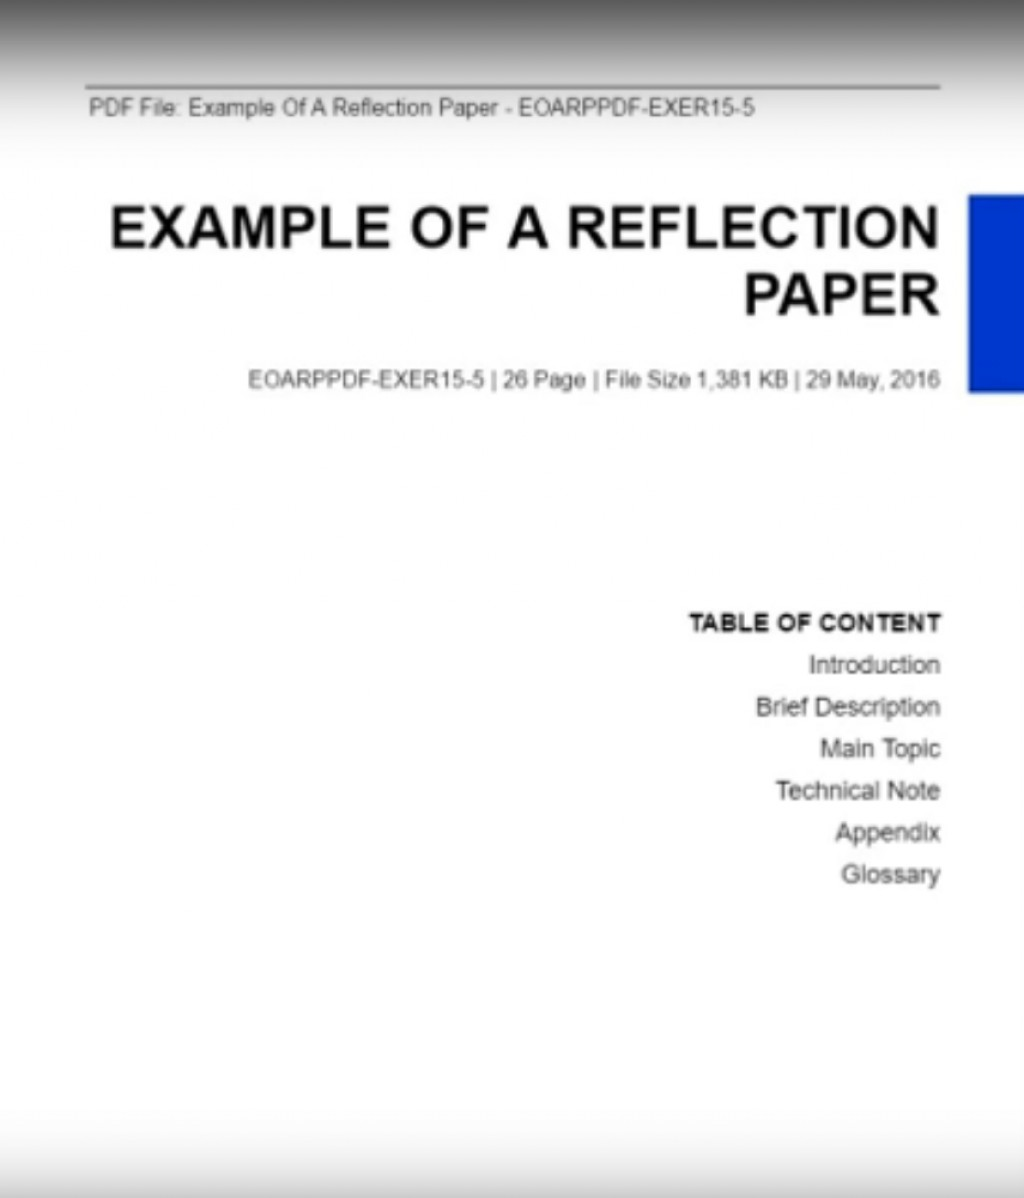 022 Reflection Paper Example Essay How To Write Awesome A Reflective Introduction On An Article Course Large